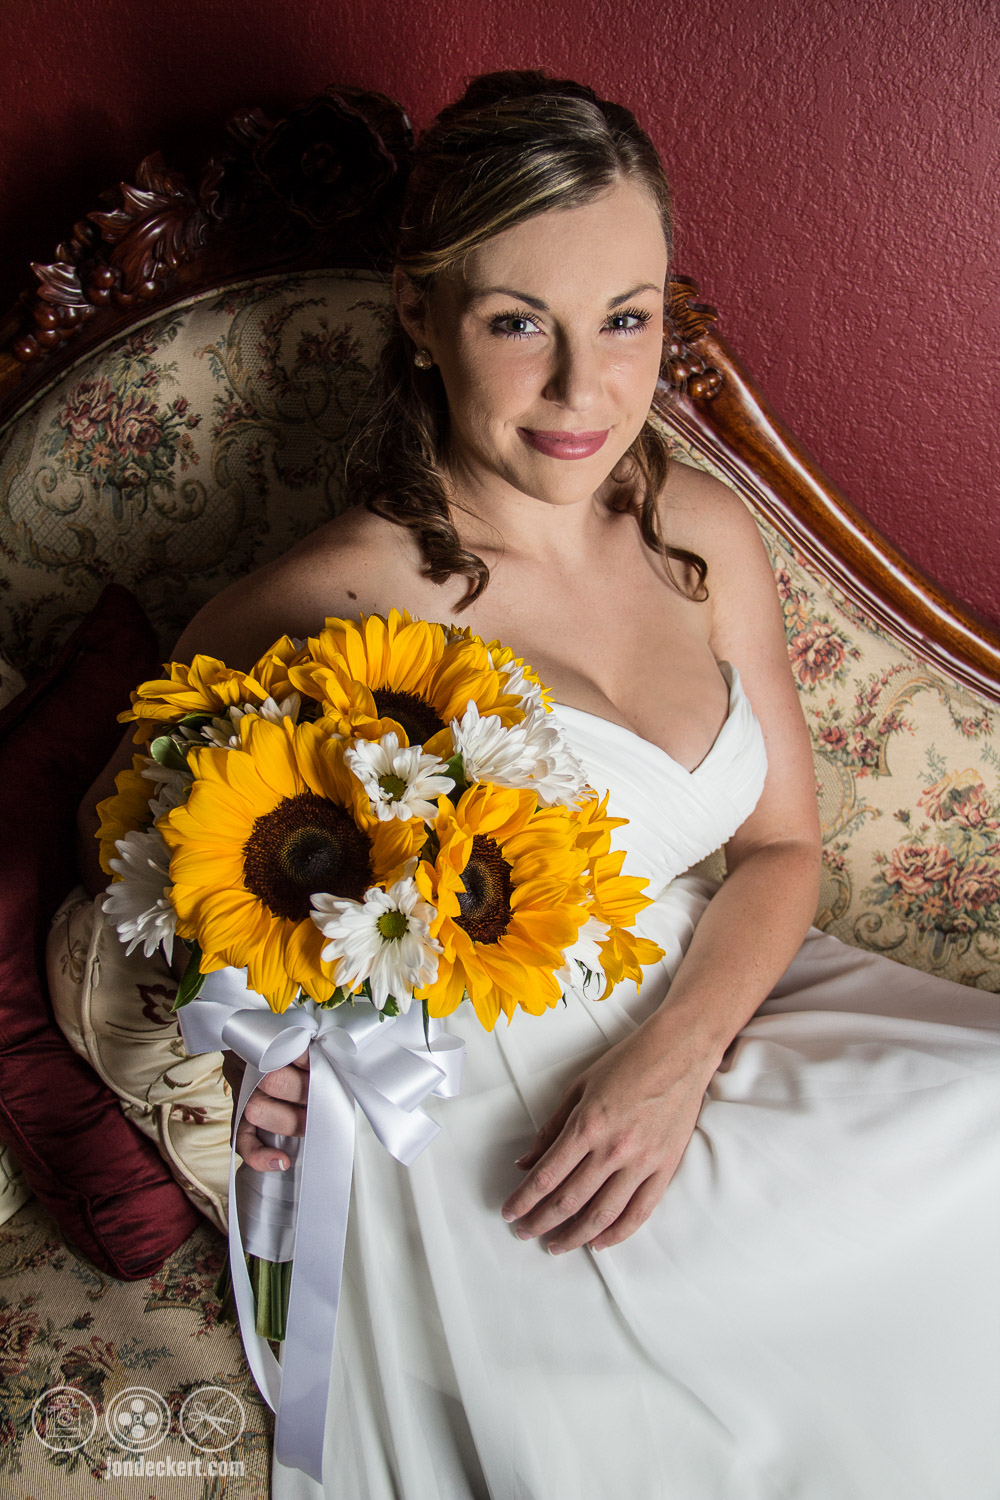 Beautiful Flowers to match beautiful bride on her wedding day